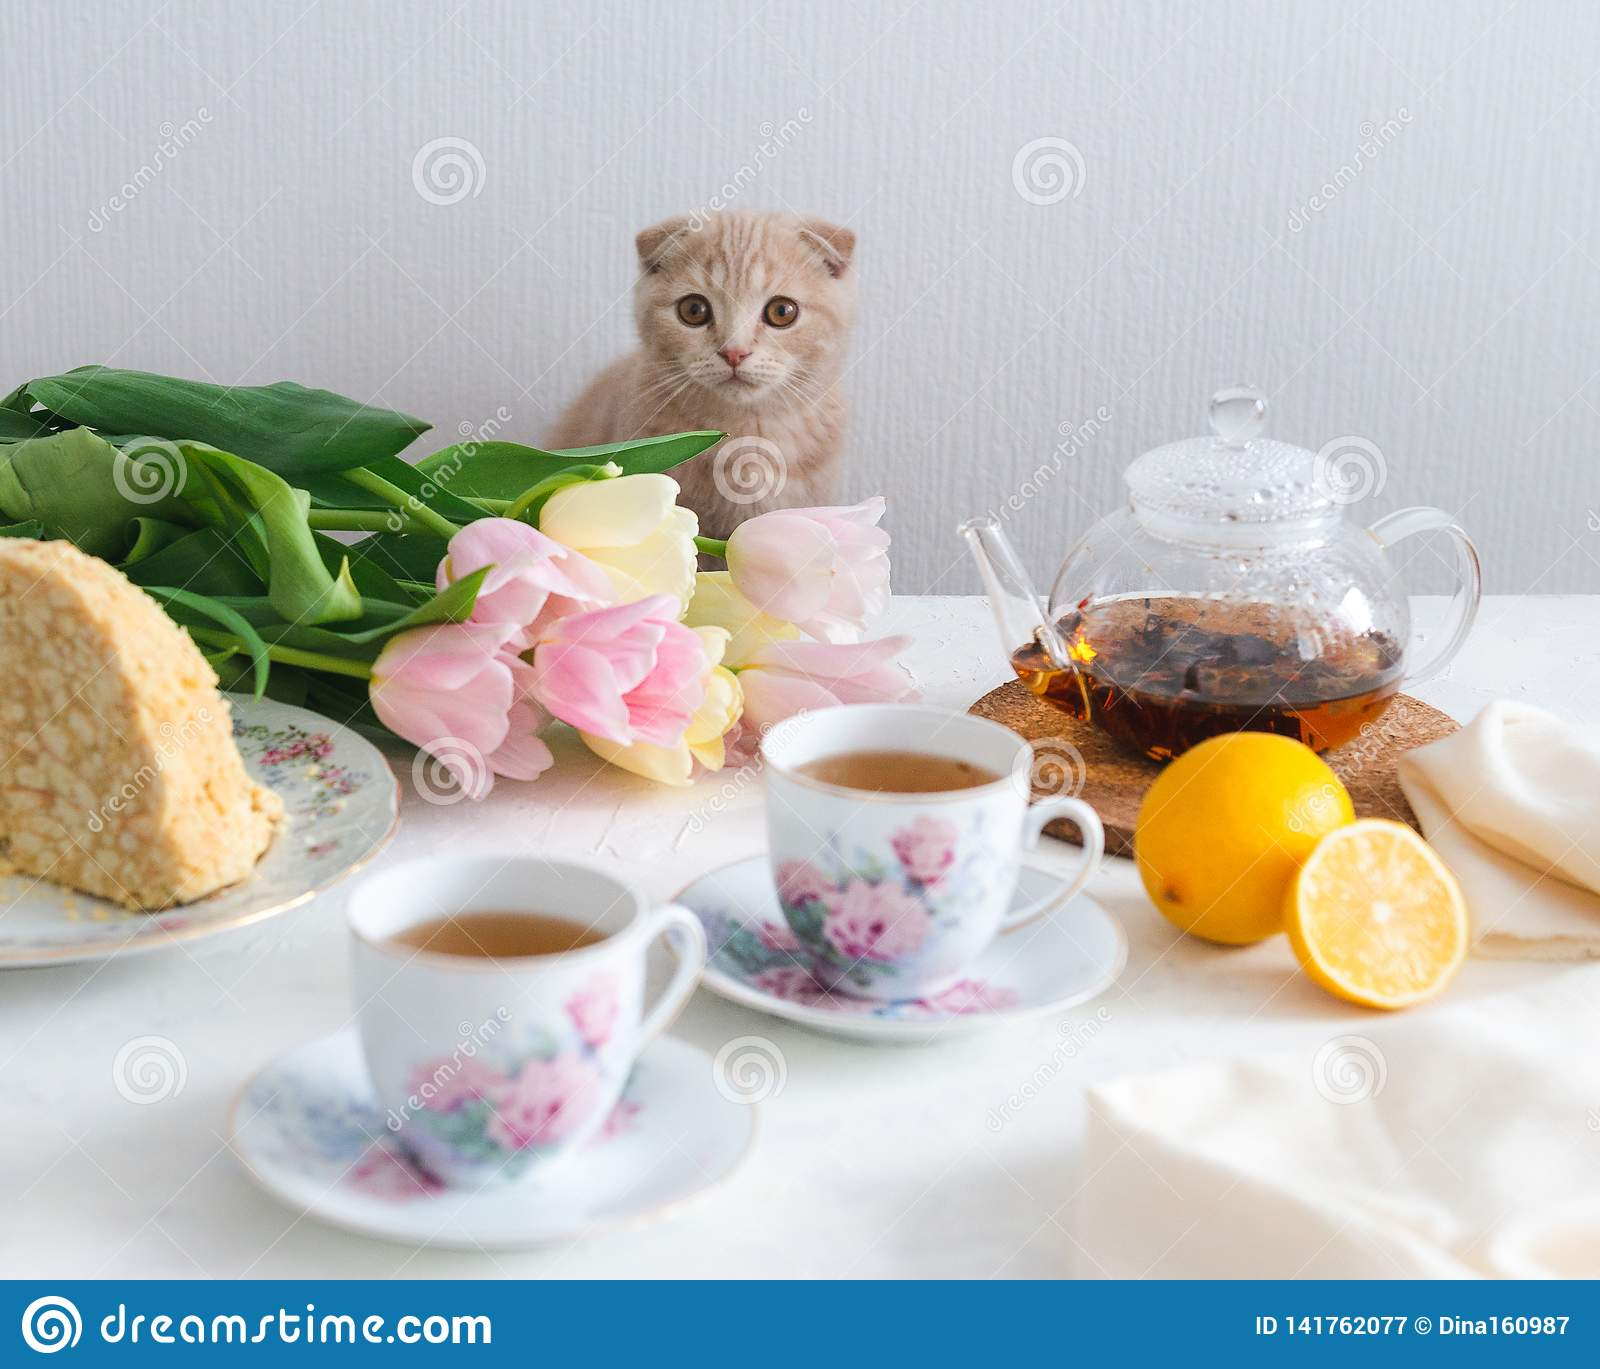 Afternoon tea with cat. Cups of tea, lemon, teapot, cake and flowers on the background